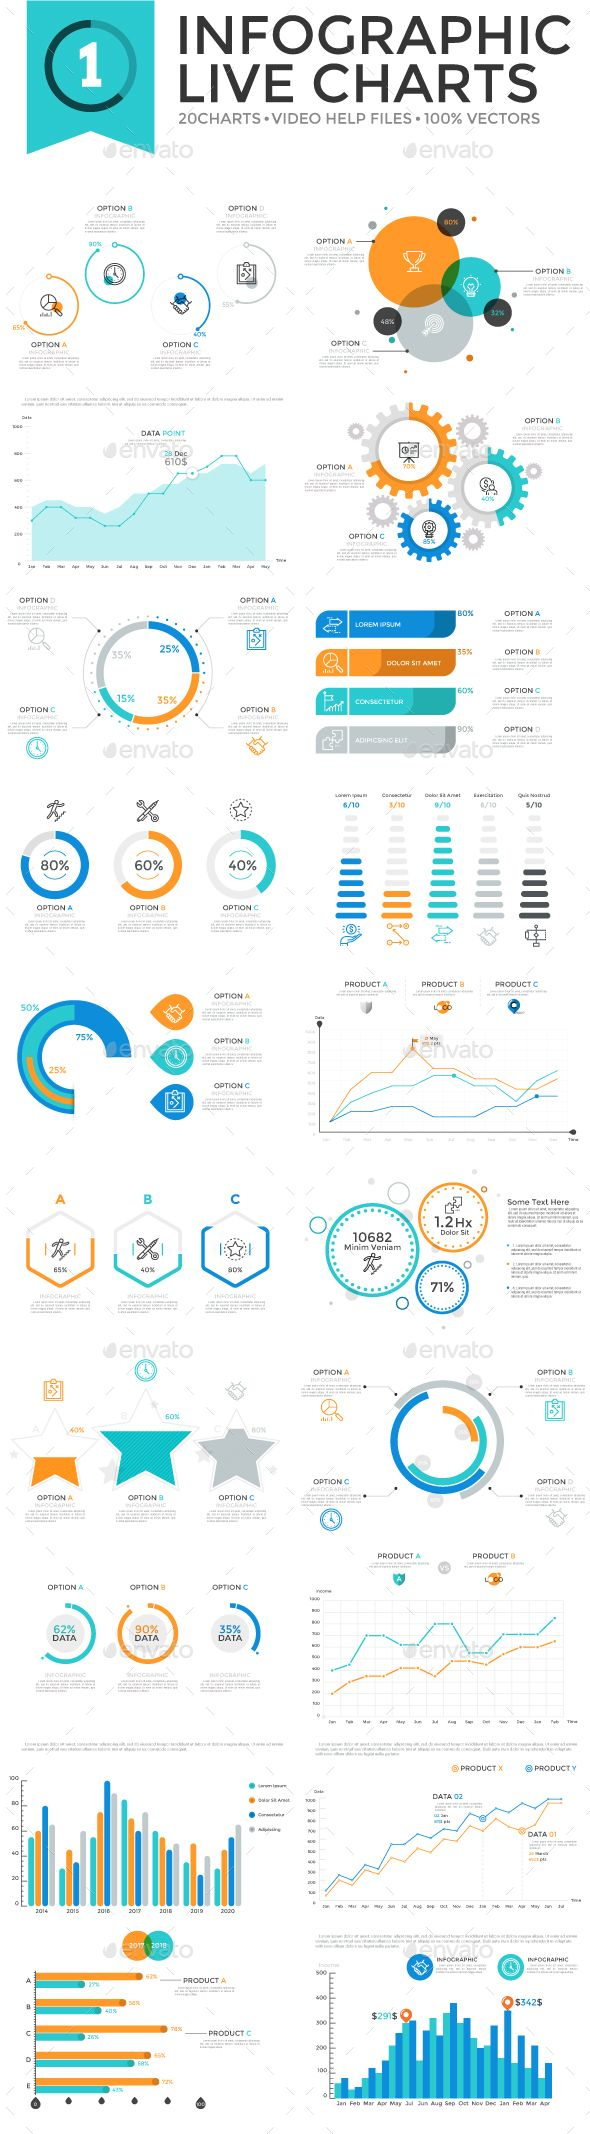 Infographic Live Charts v 1 contains 20 fully editable live graphs